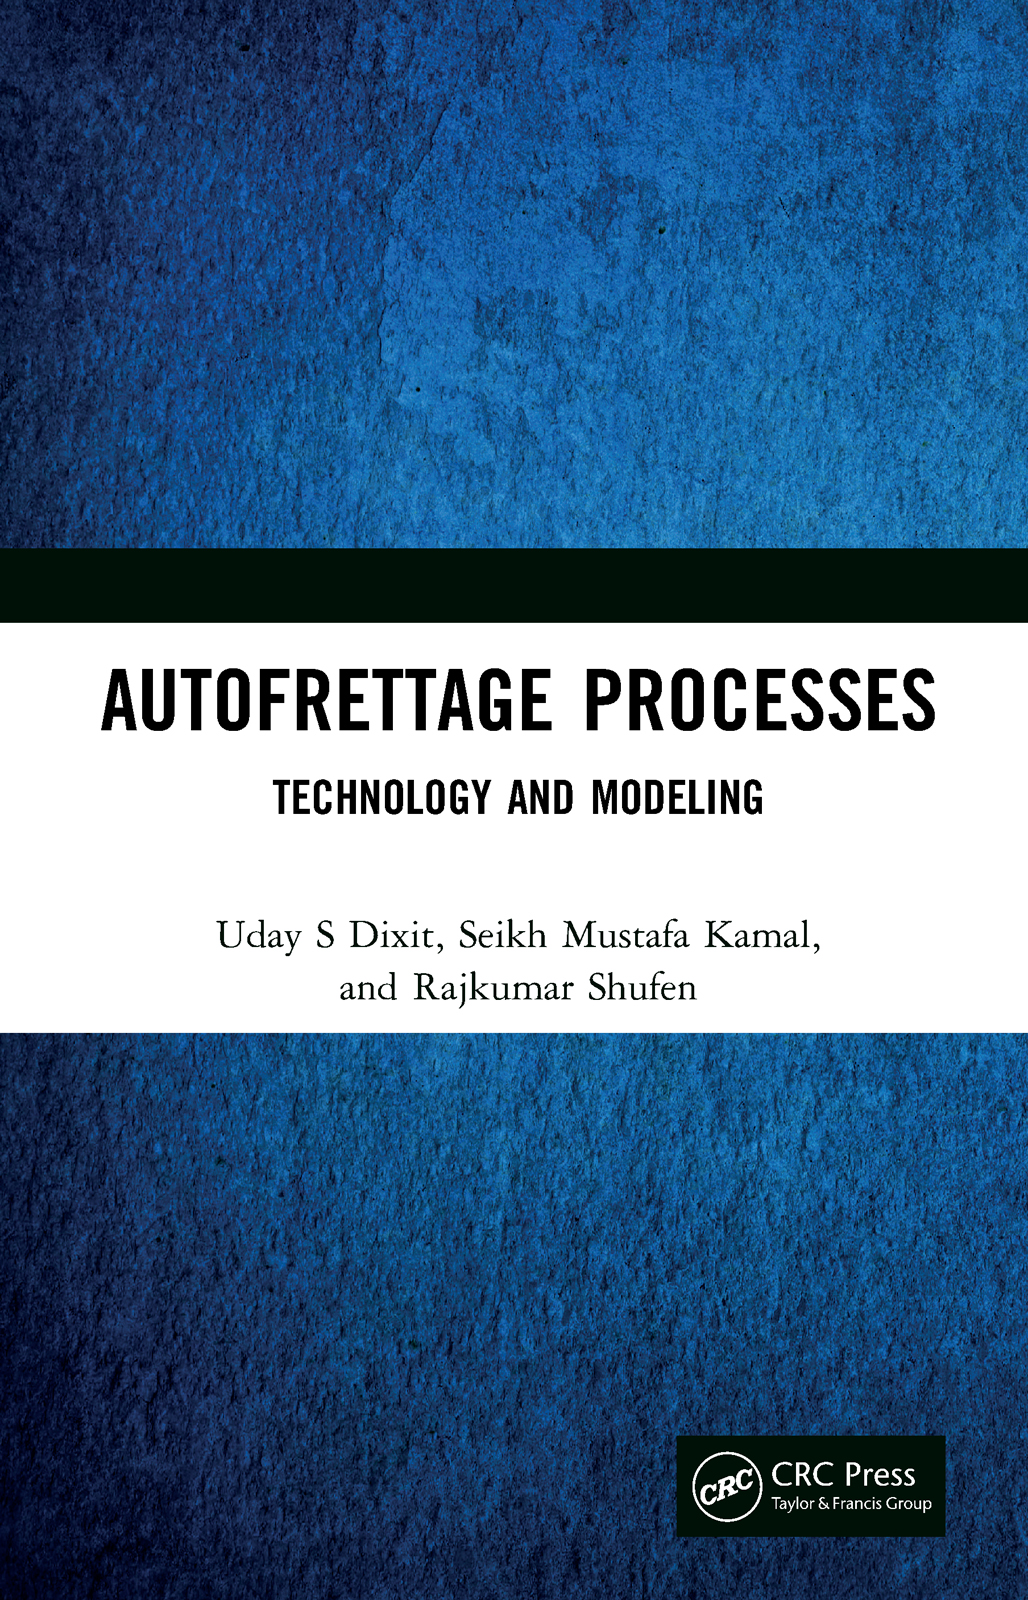 Autofrettage Processes: Technology and Modelling book cover